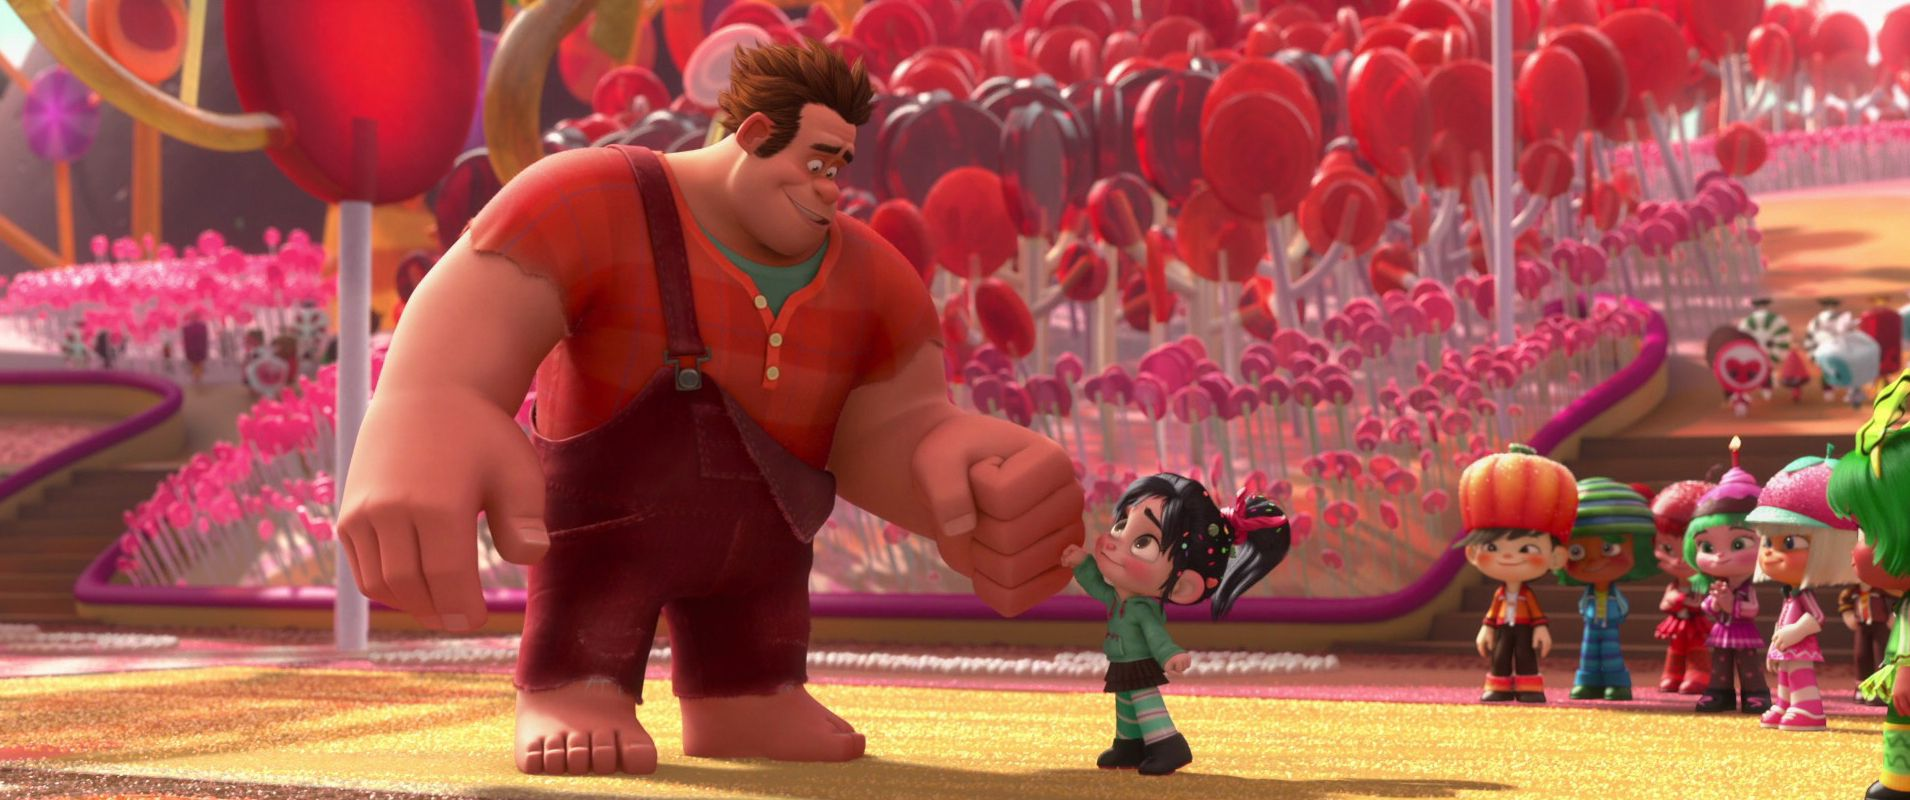 An image from Wreck-It Ralph